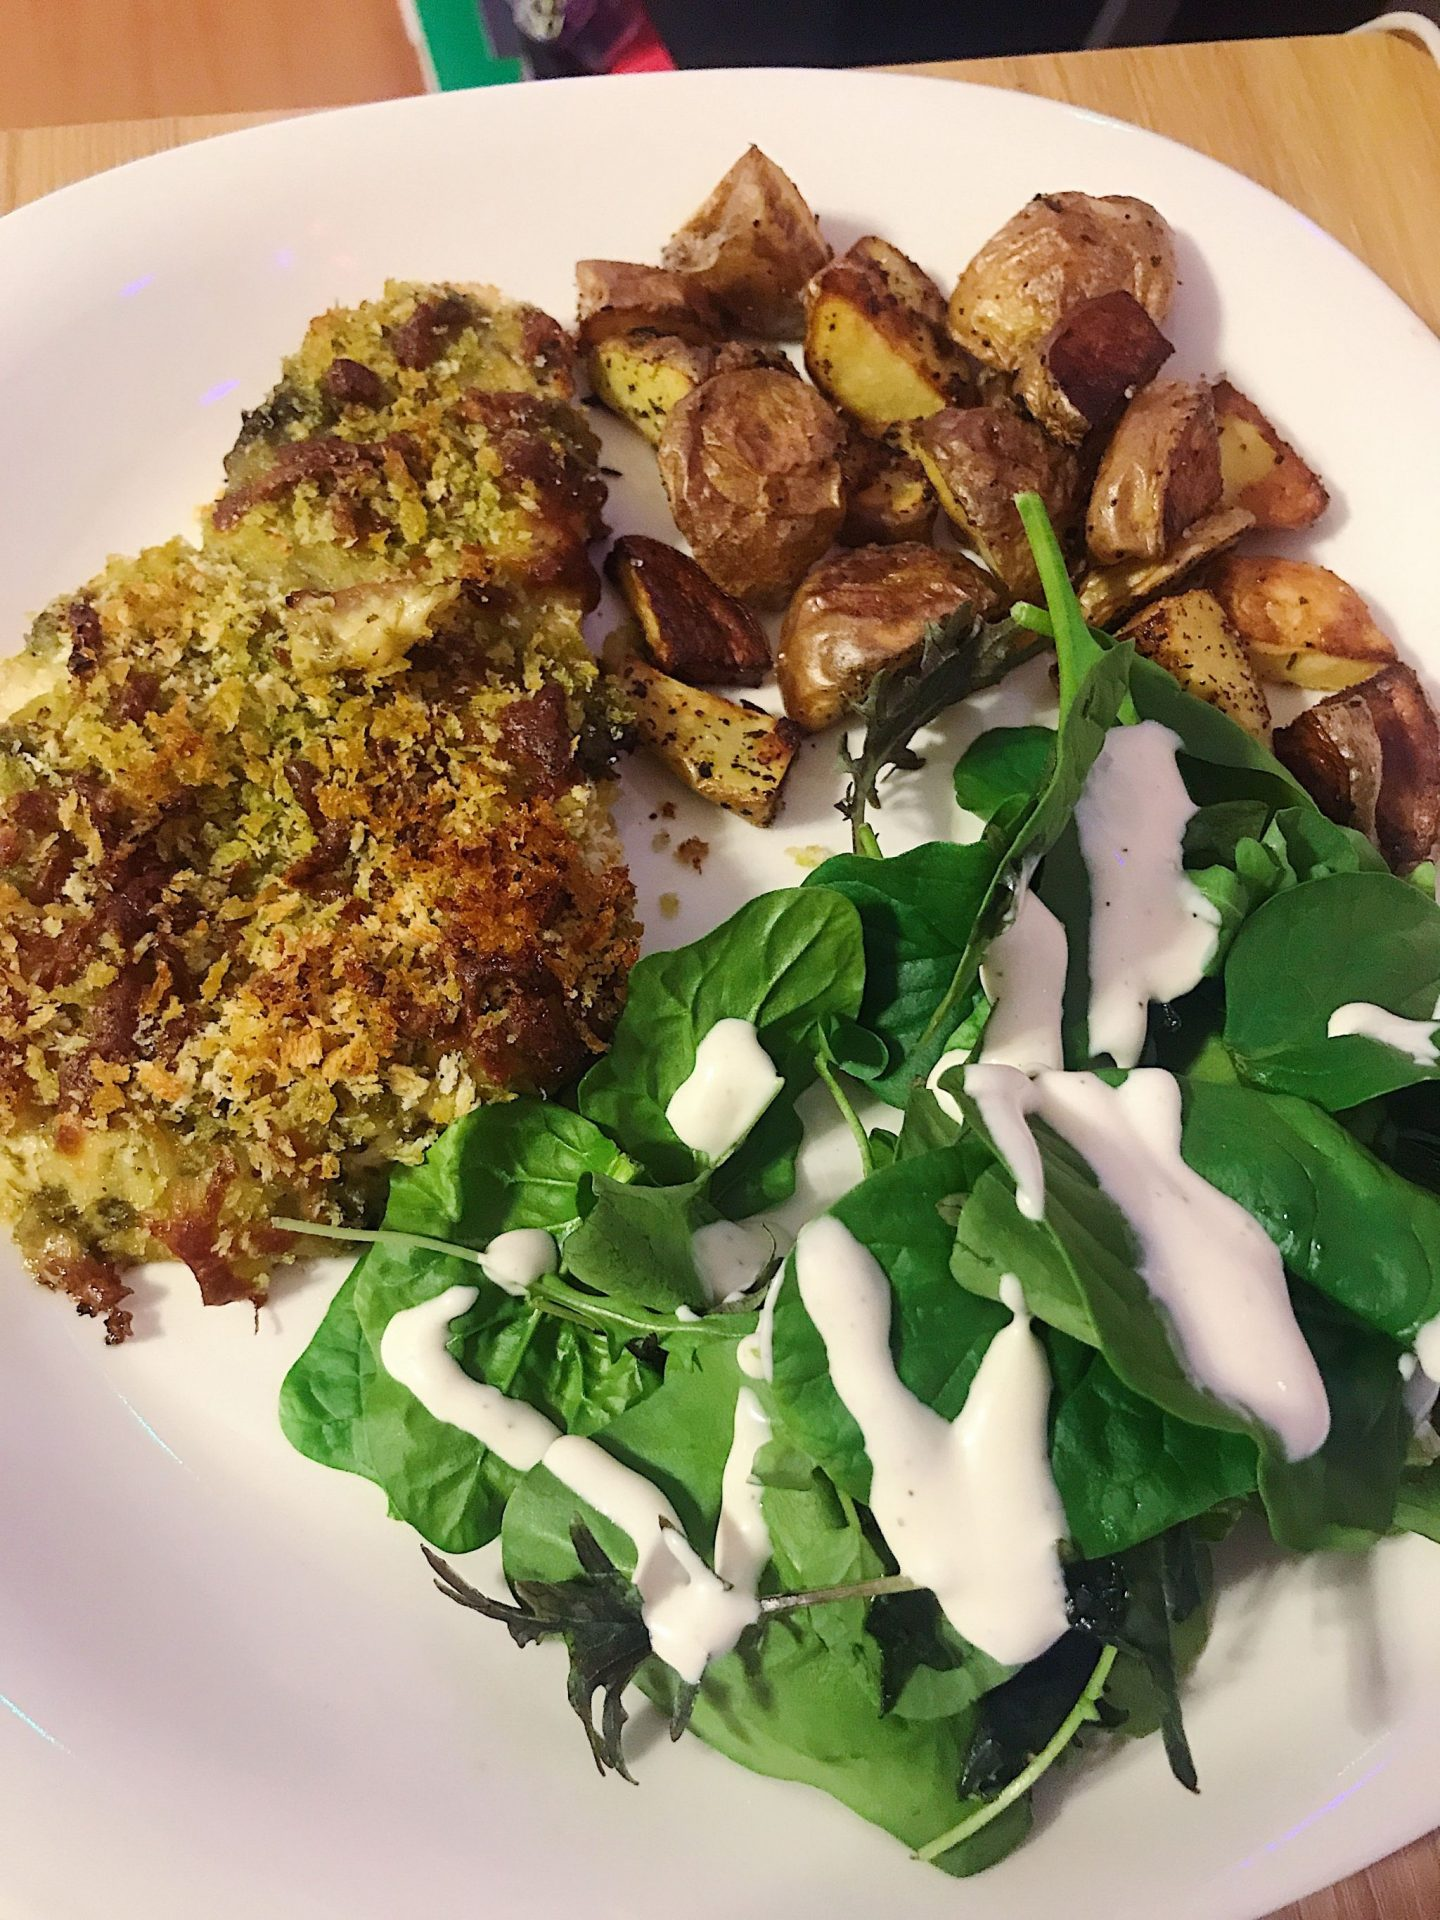 Pesto panko chicken and potatoes